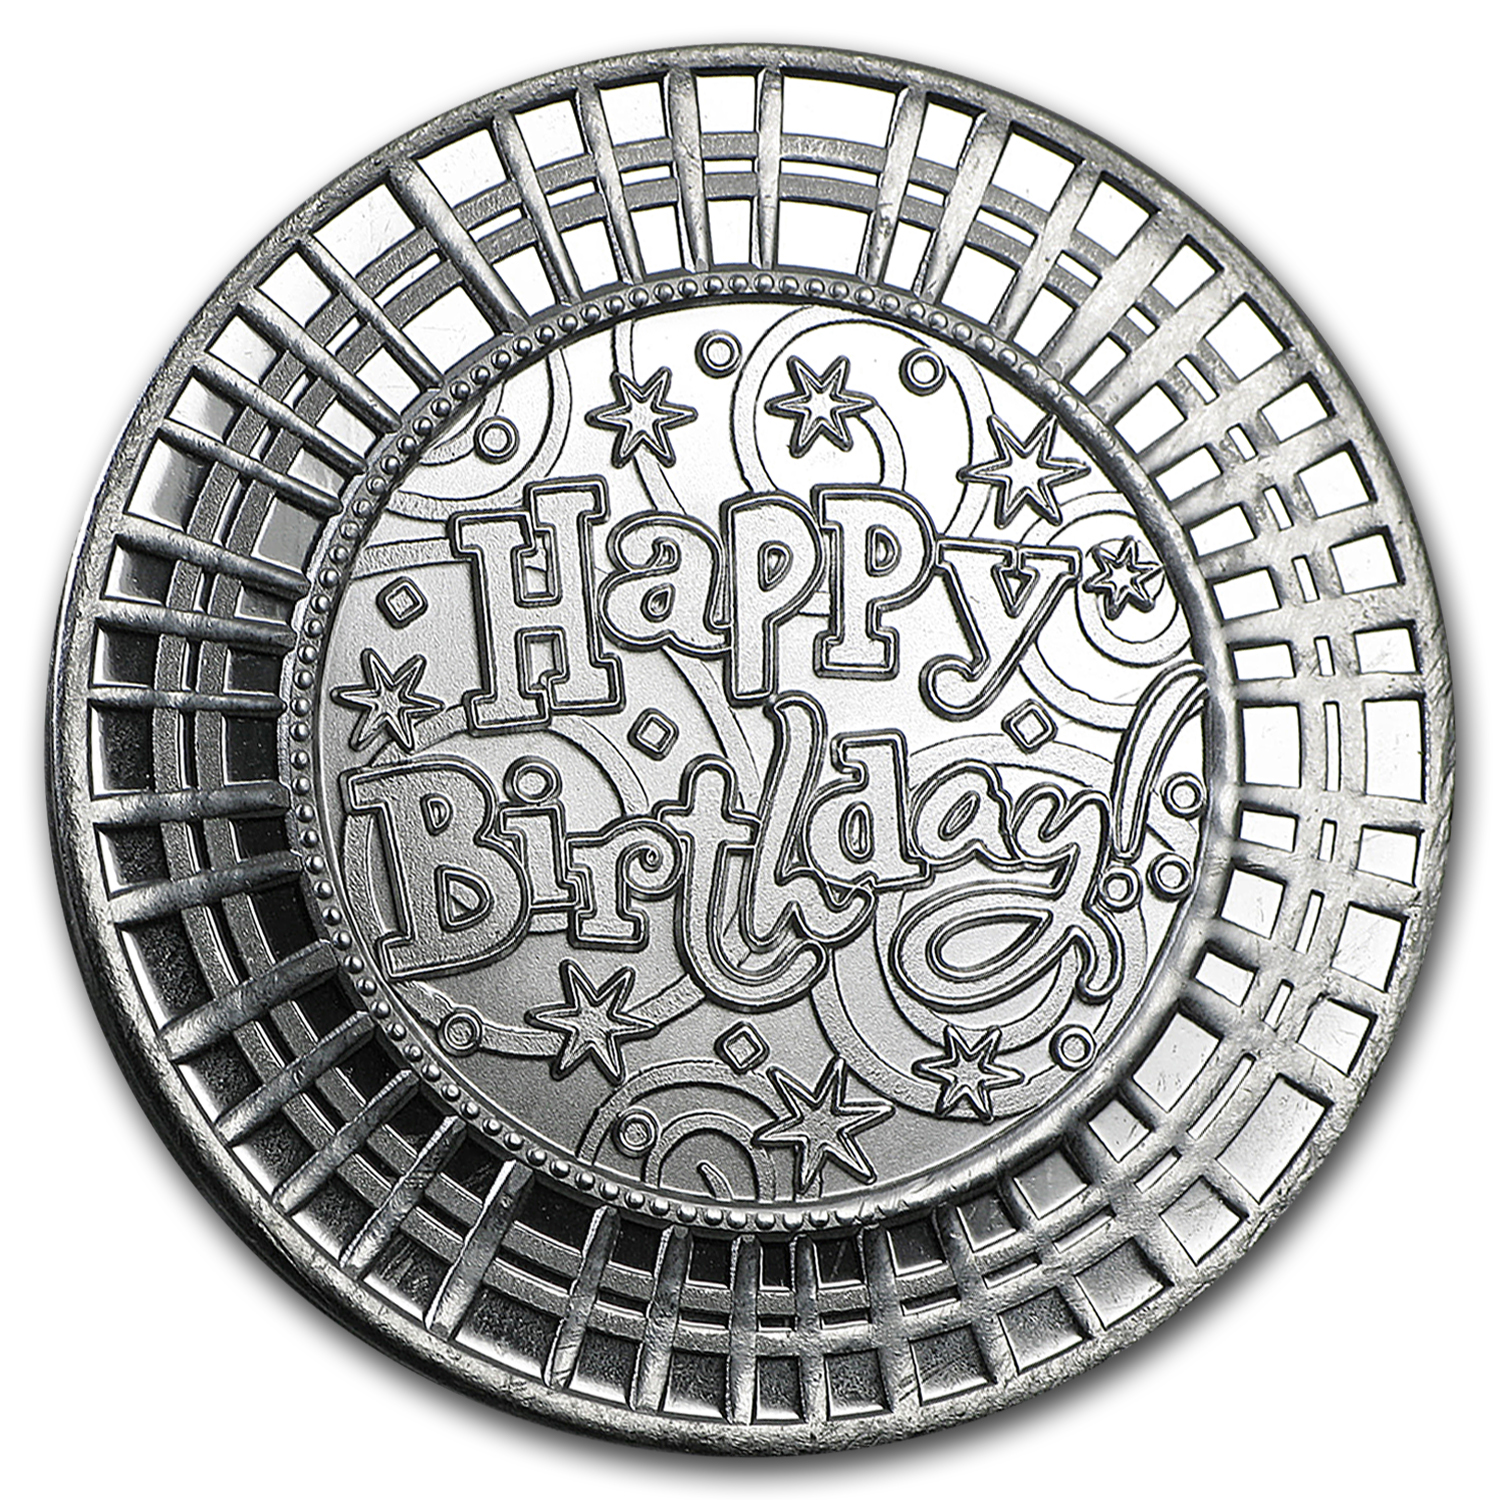 1 oz Silver Rnd - Happy Birthday Mosaic